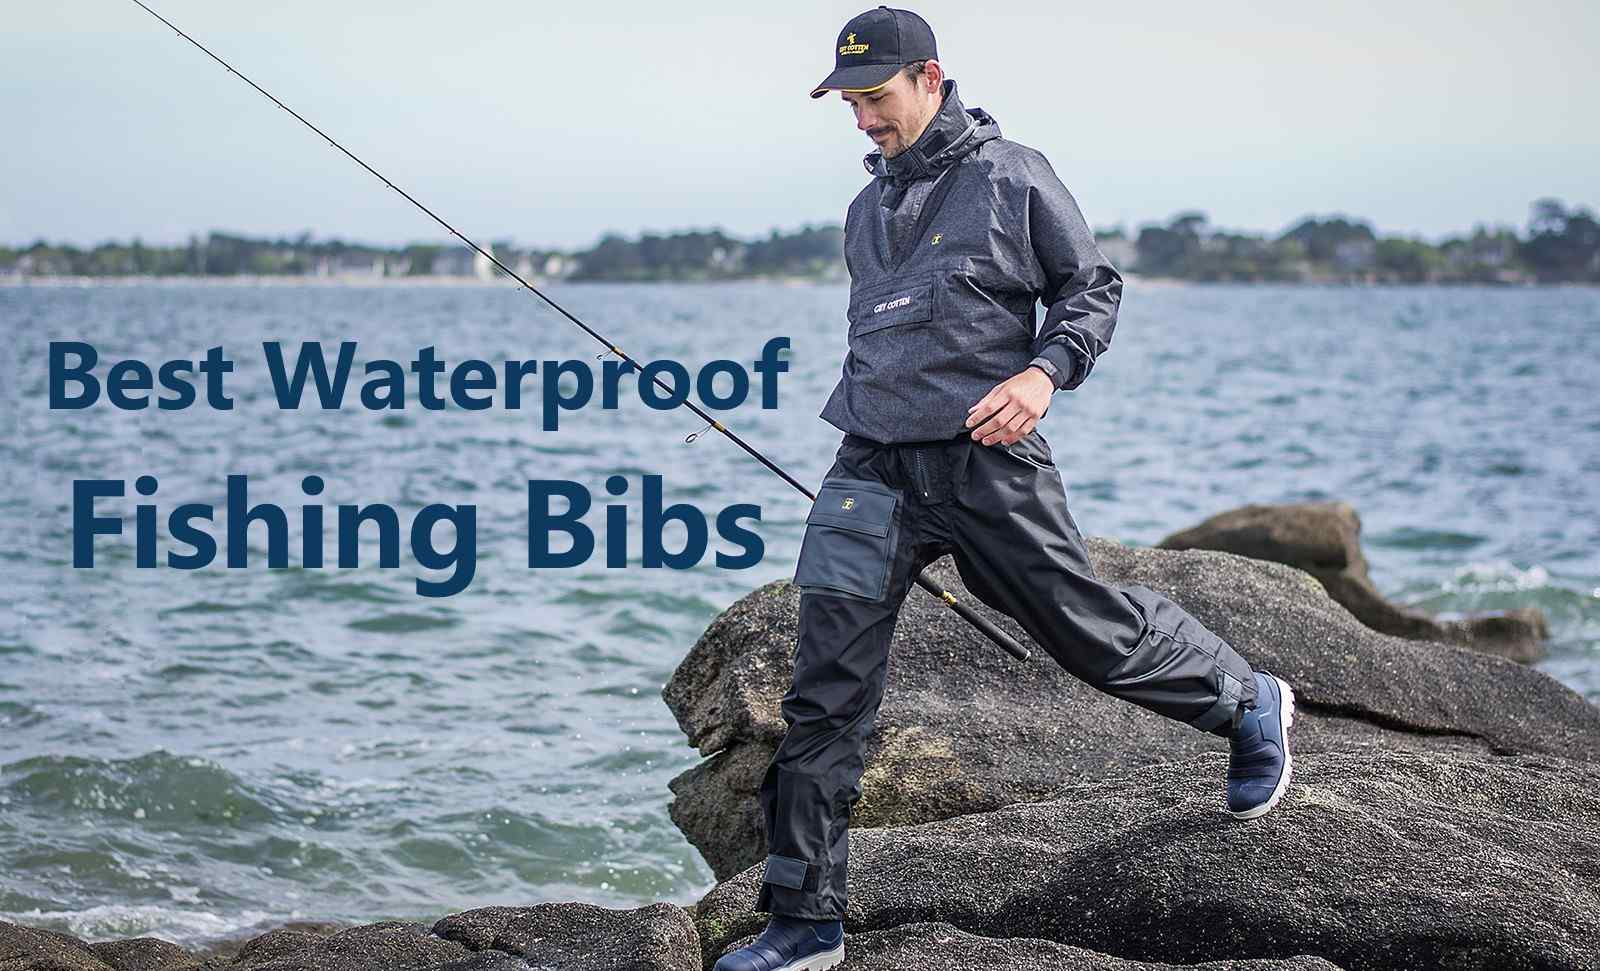 Best waterproof fishing bibs